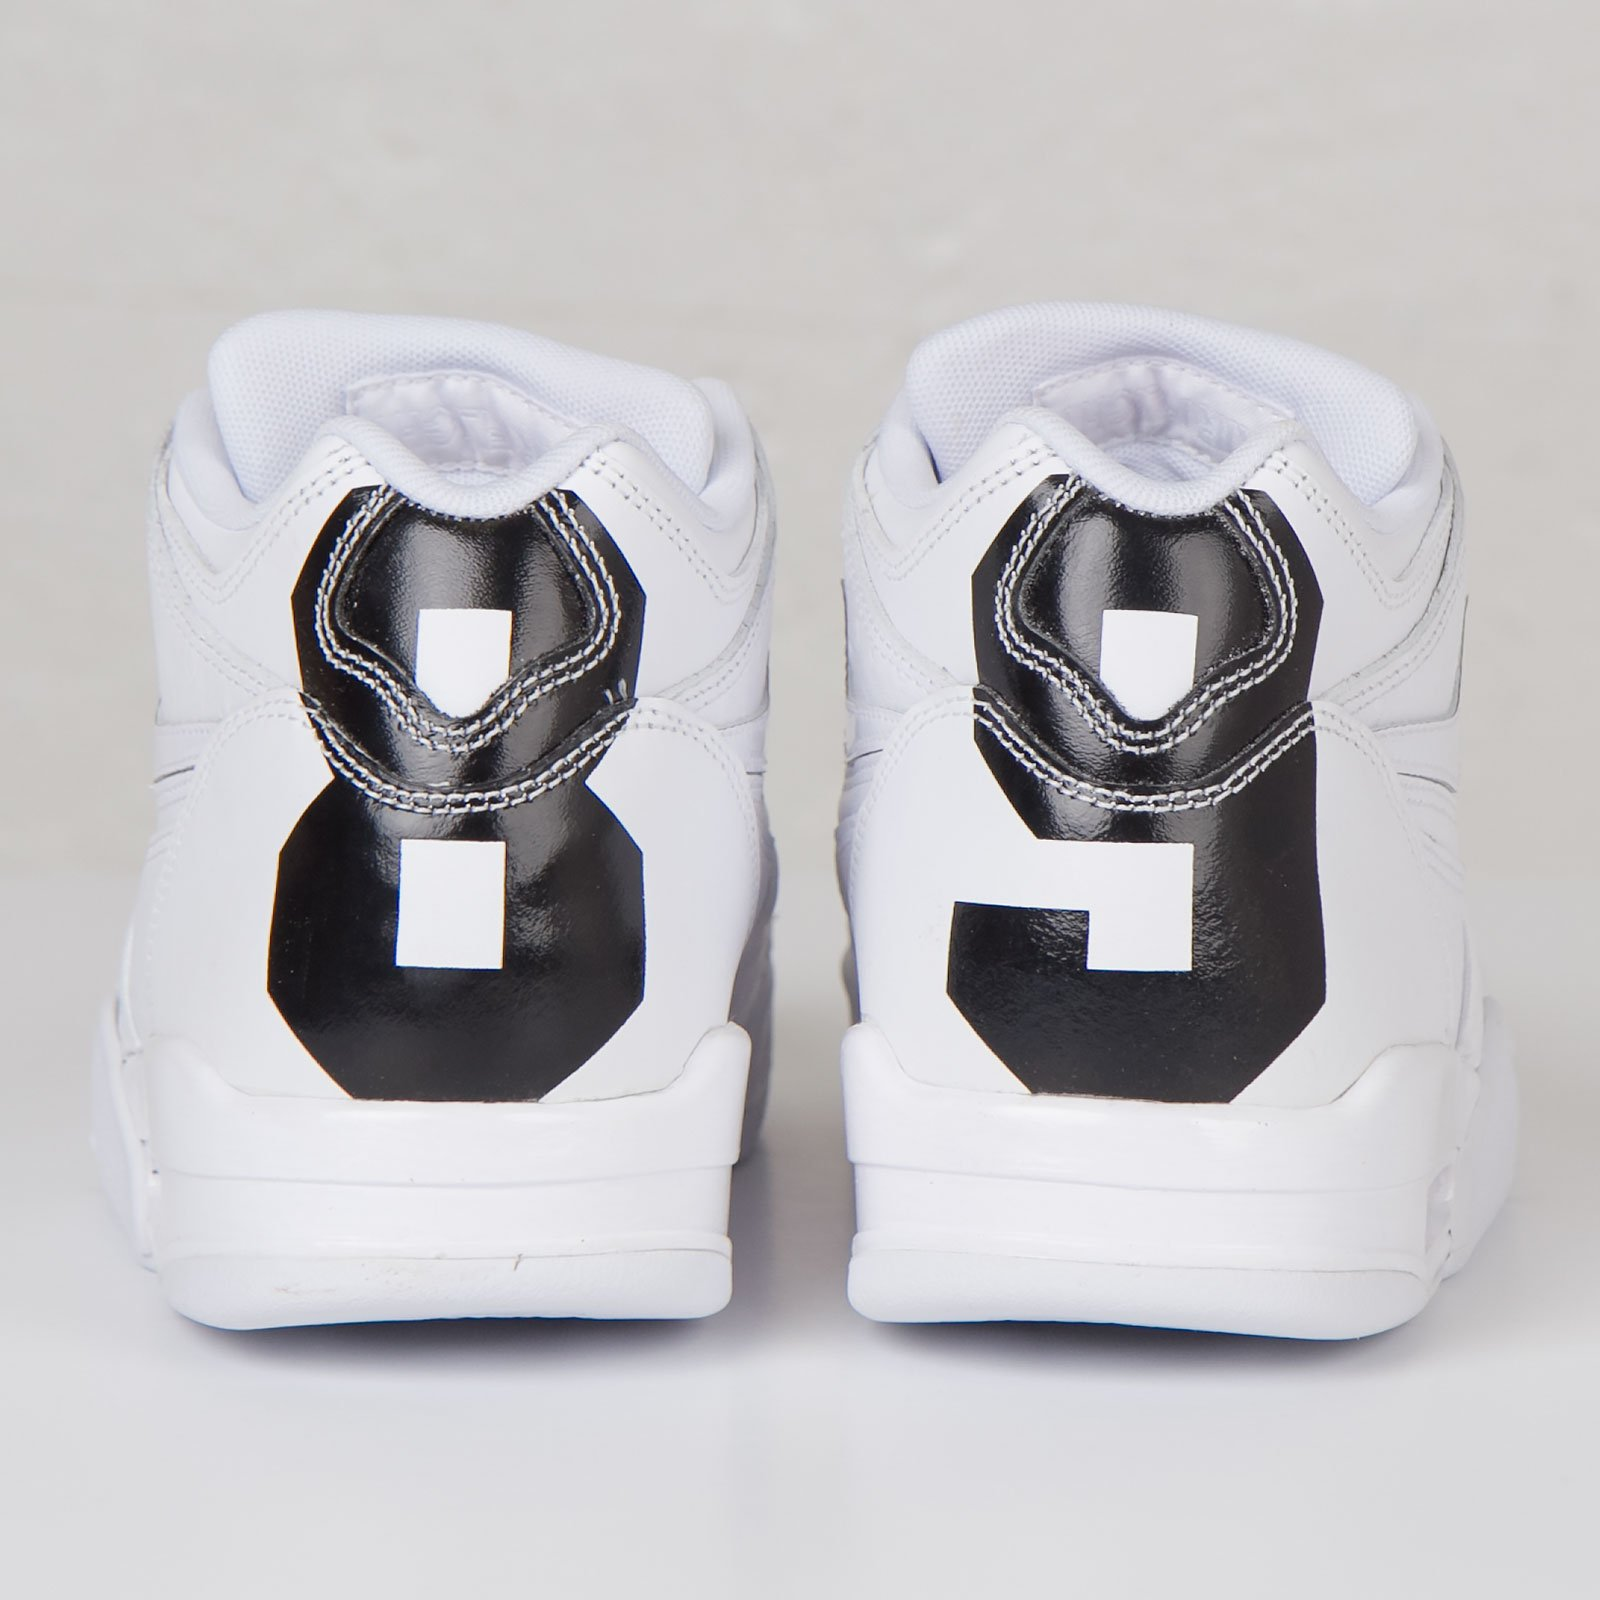 premium selection 8b3ef bd265 Nike Air Flight 89 LE QS - 804605-100 - Sneakersnstuff   sneakers    streetwear online since 1999